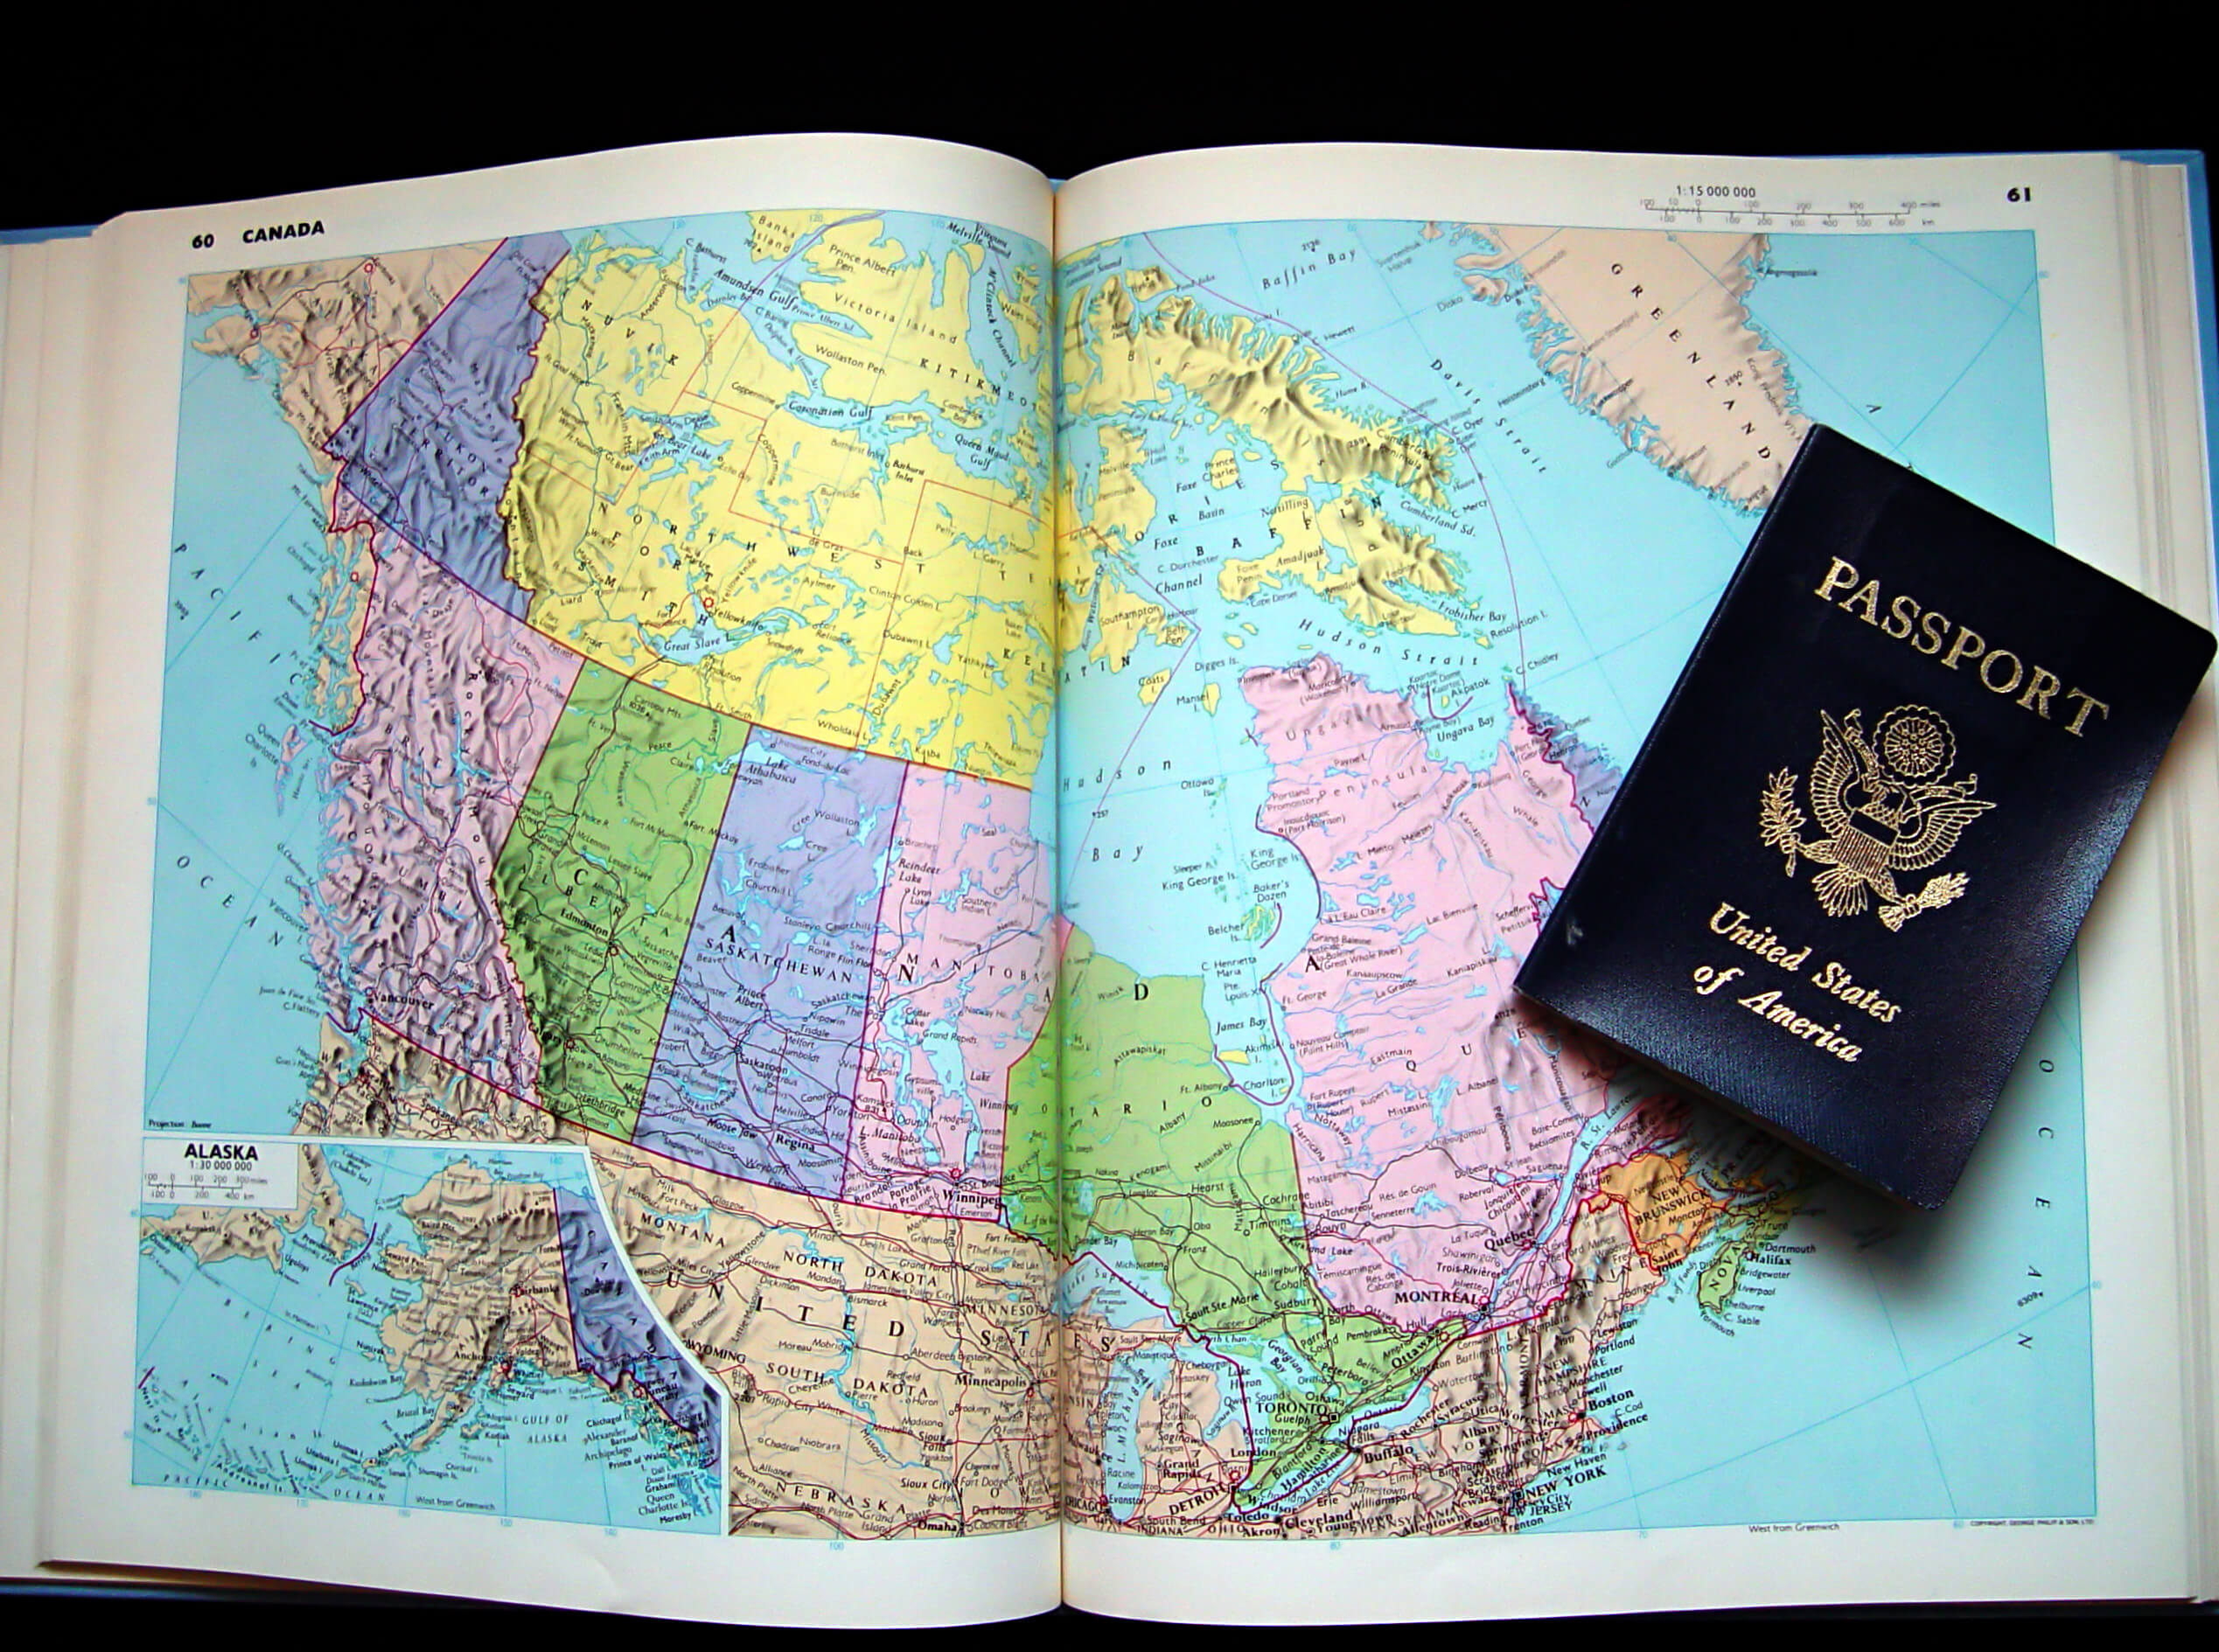 Passport Book For Travel To Canada